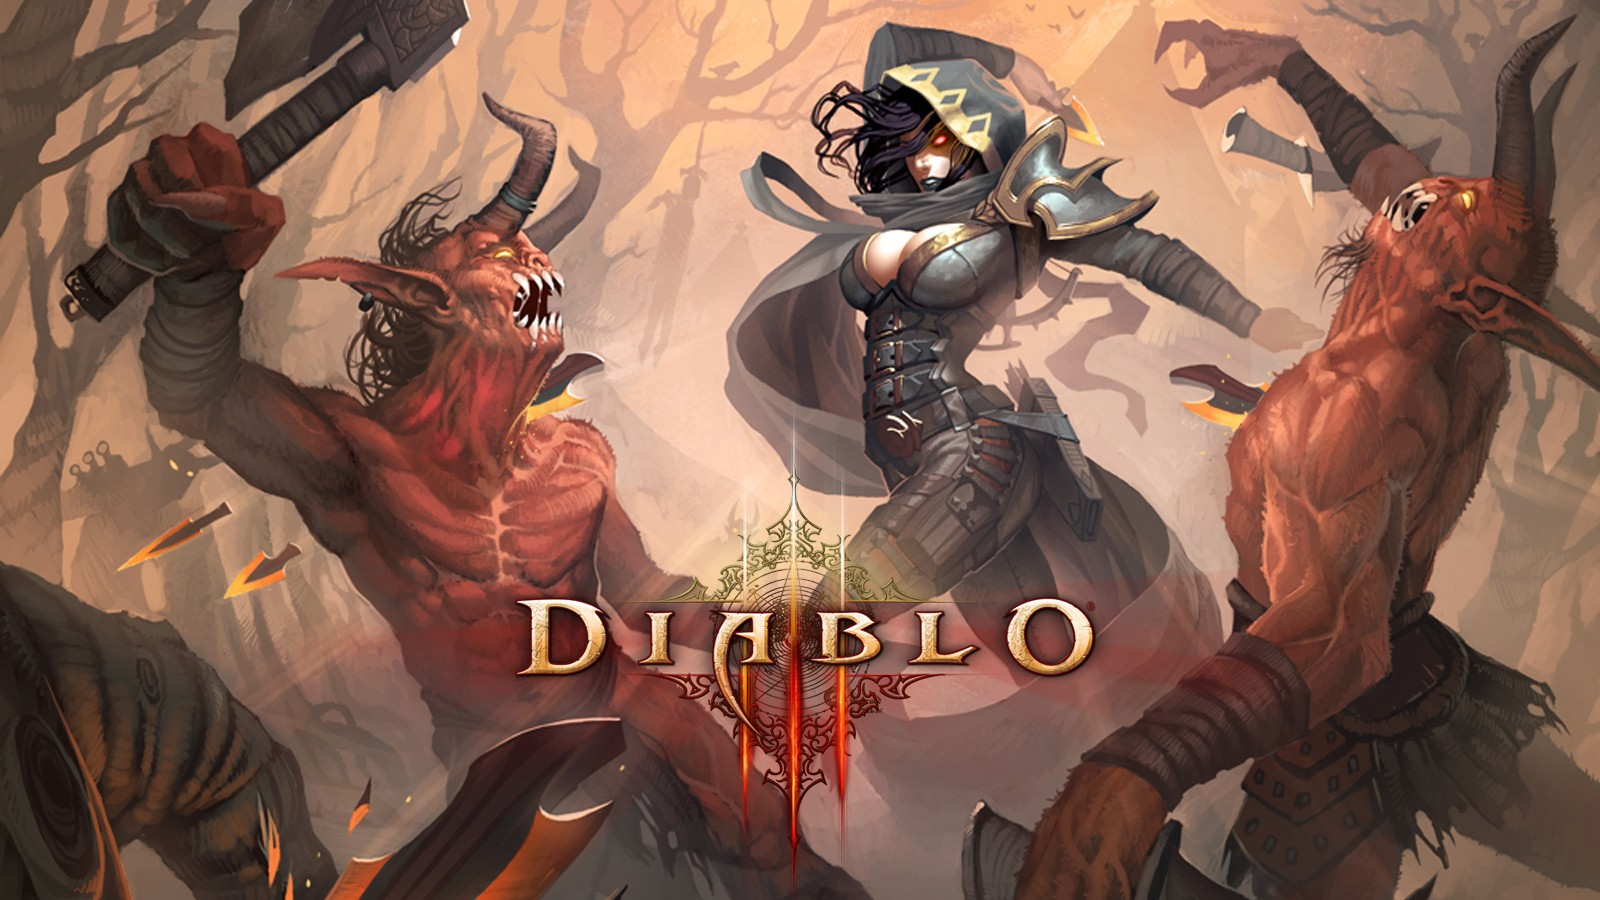 Diablo Demon Hunter Diablo III games wallpaper | 1600x900 ...